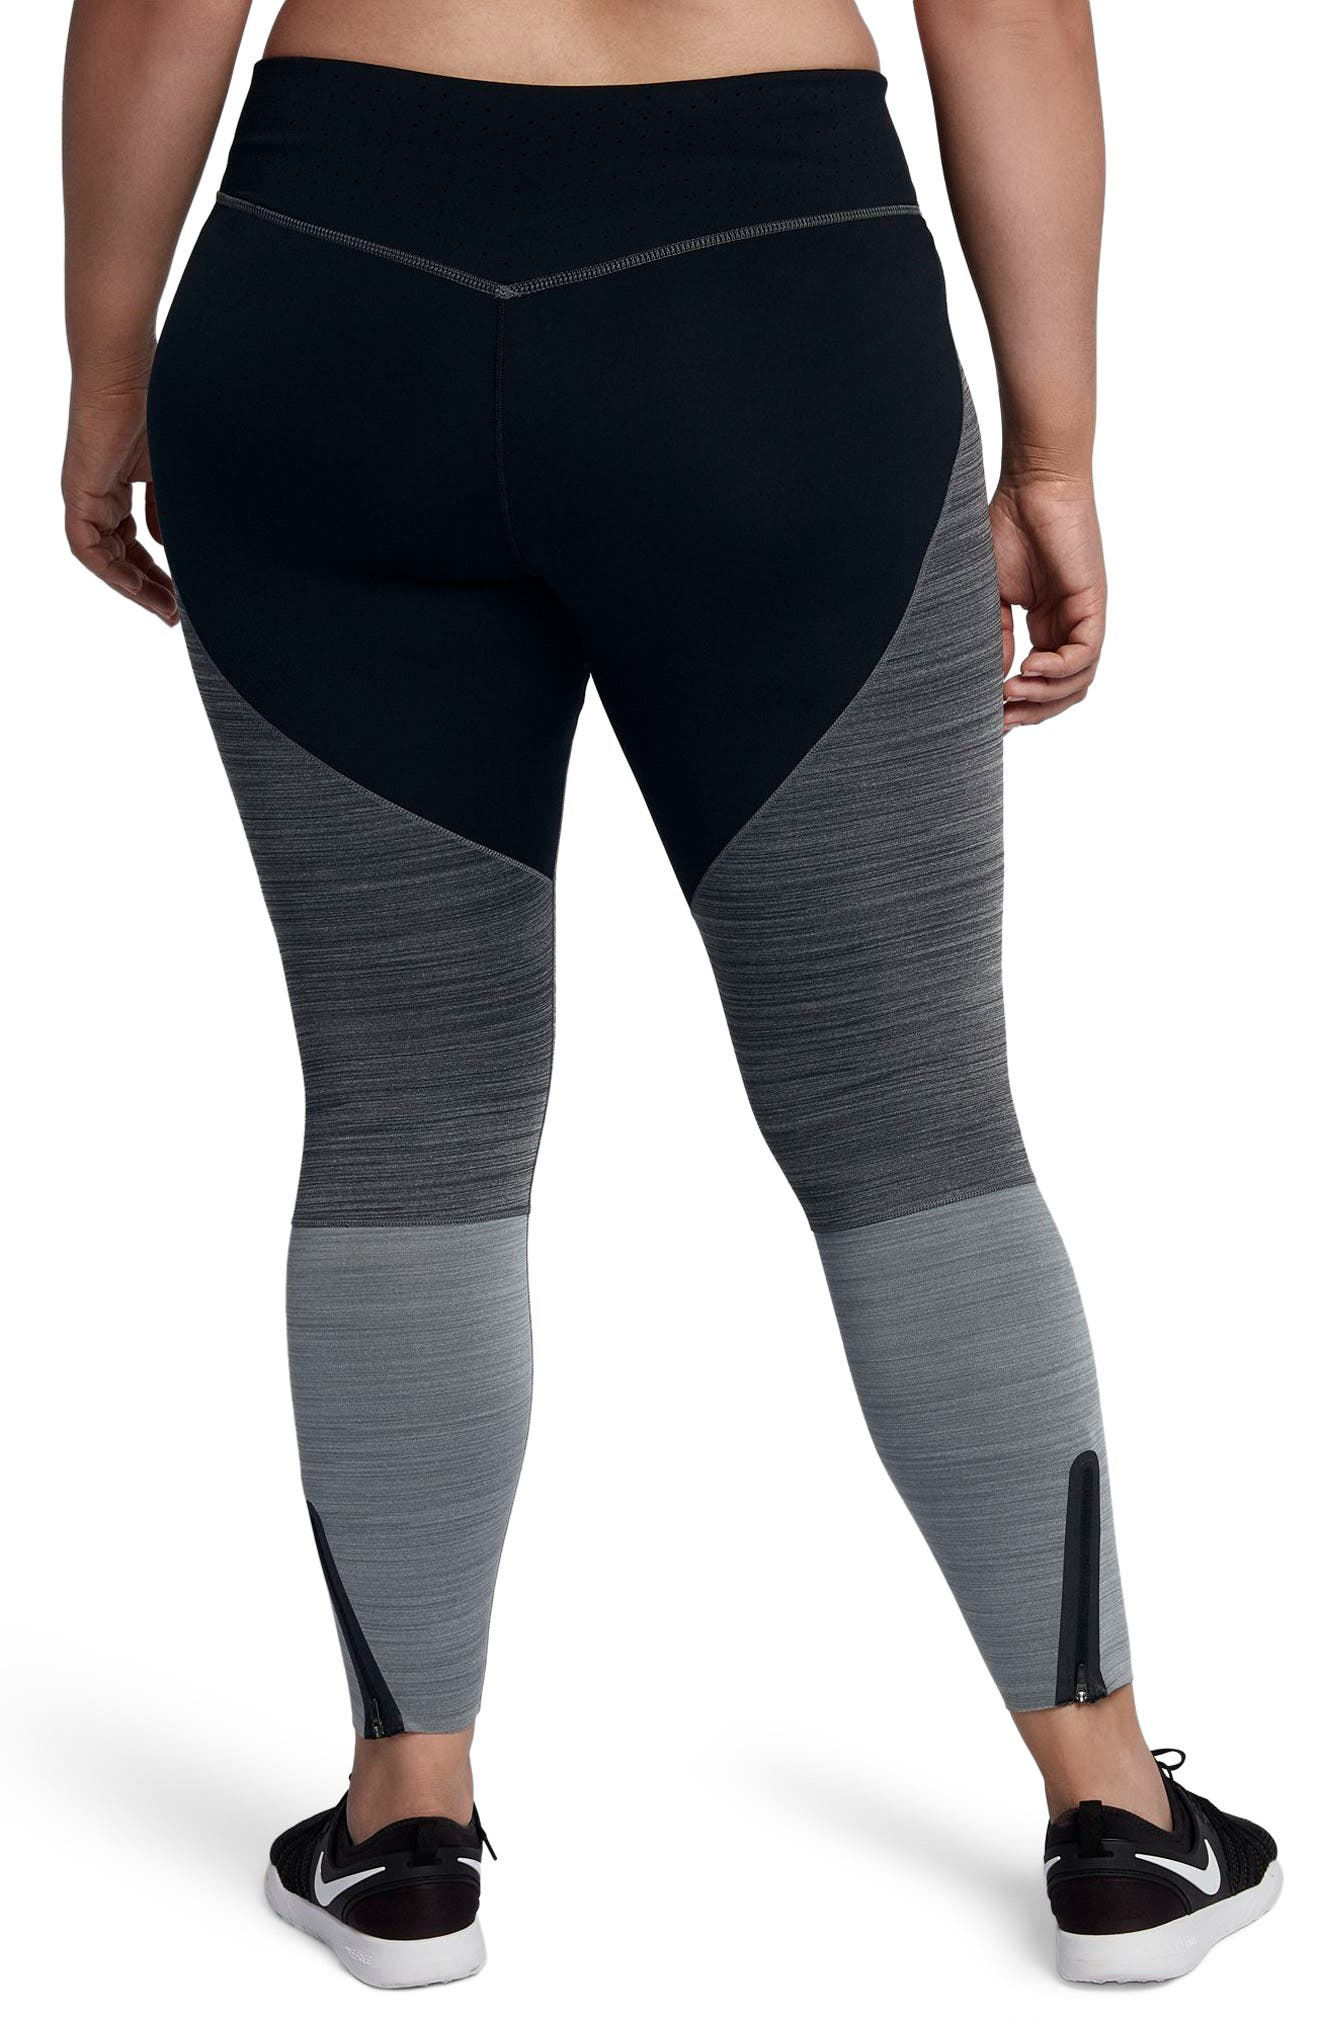 Legendary Training Tights,                             Alternate thumbnail 3, color,